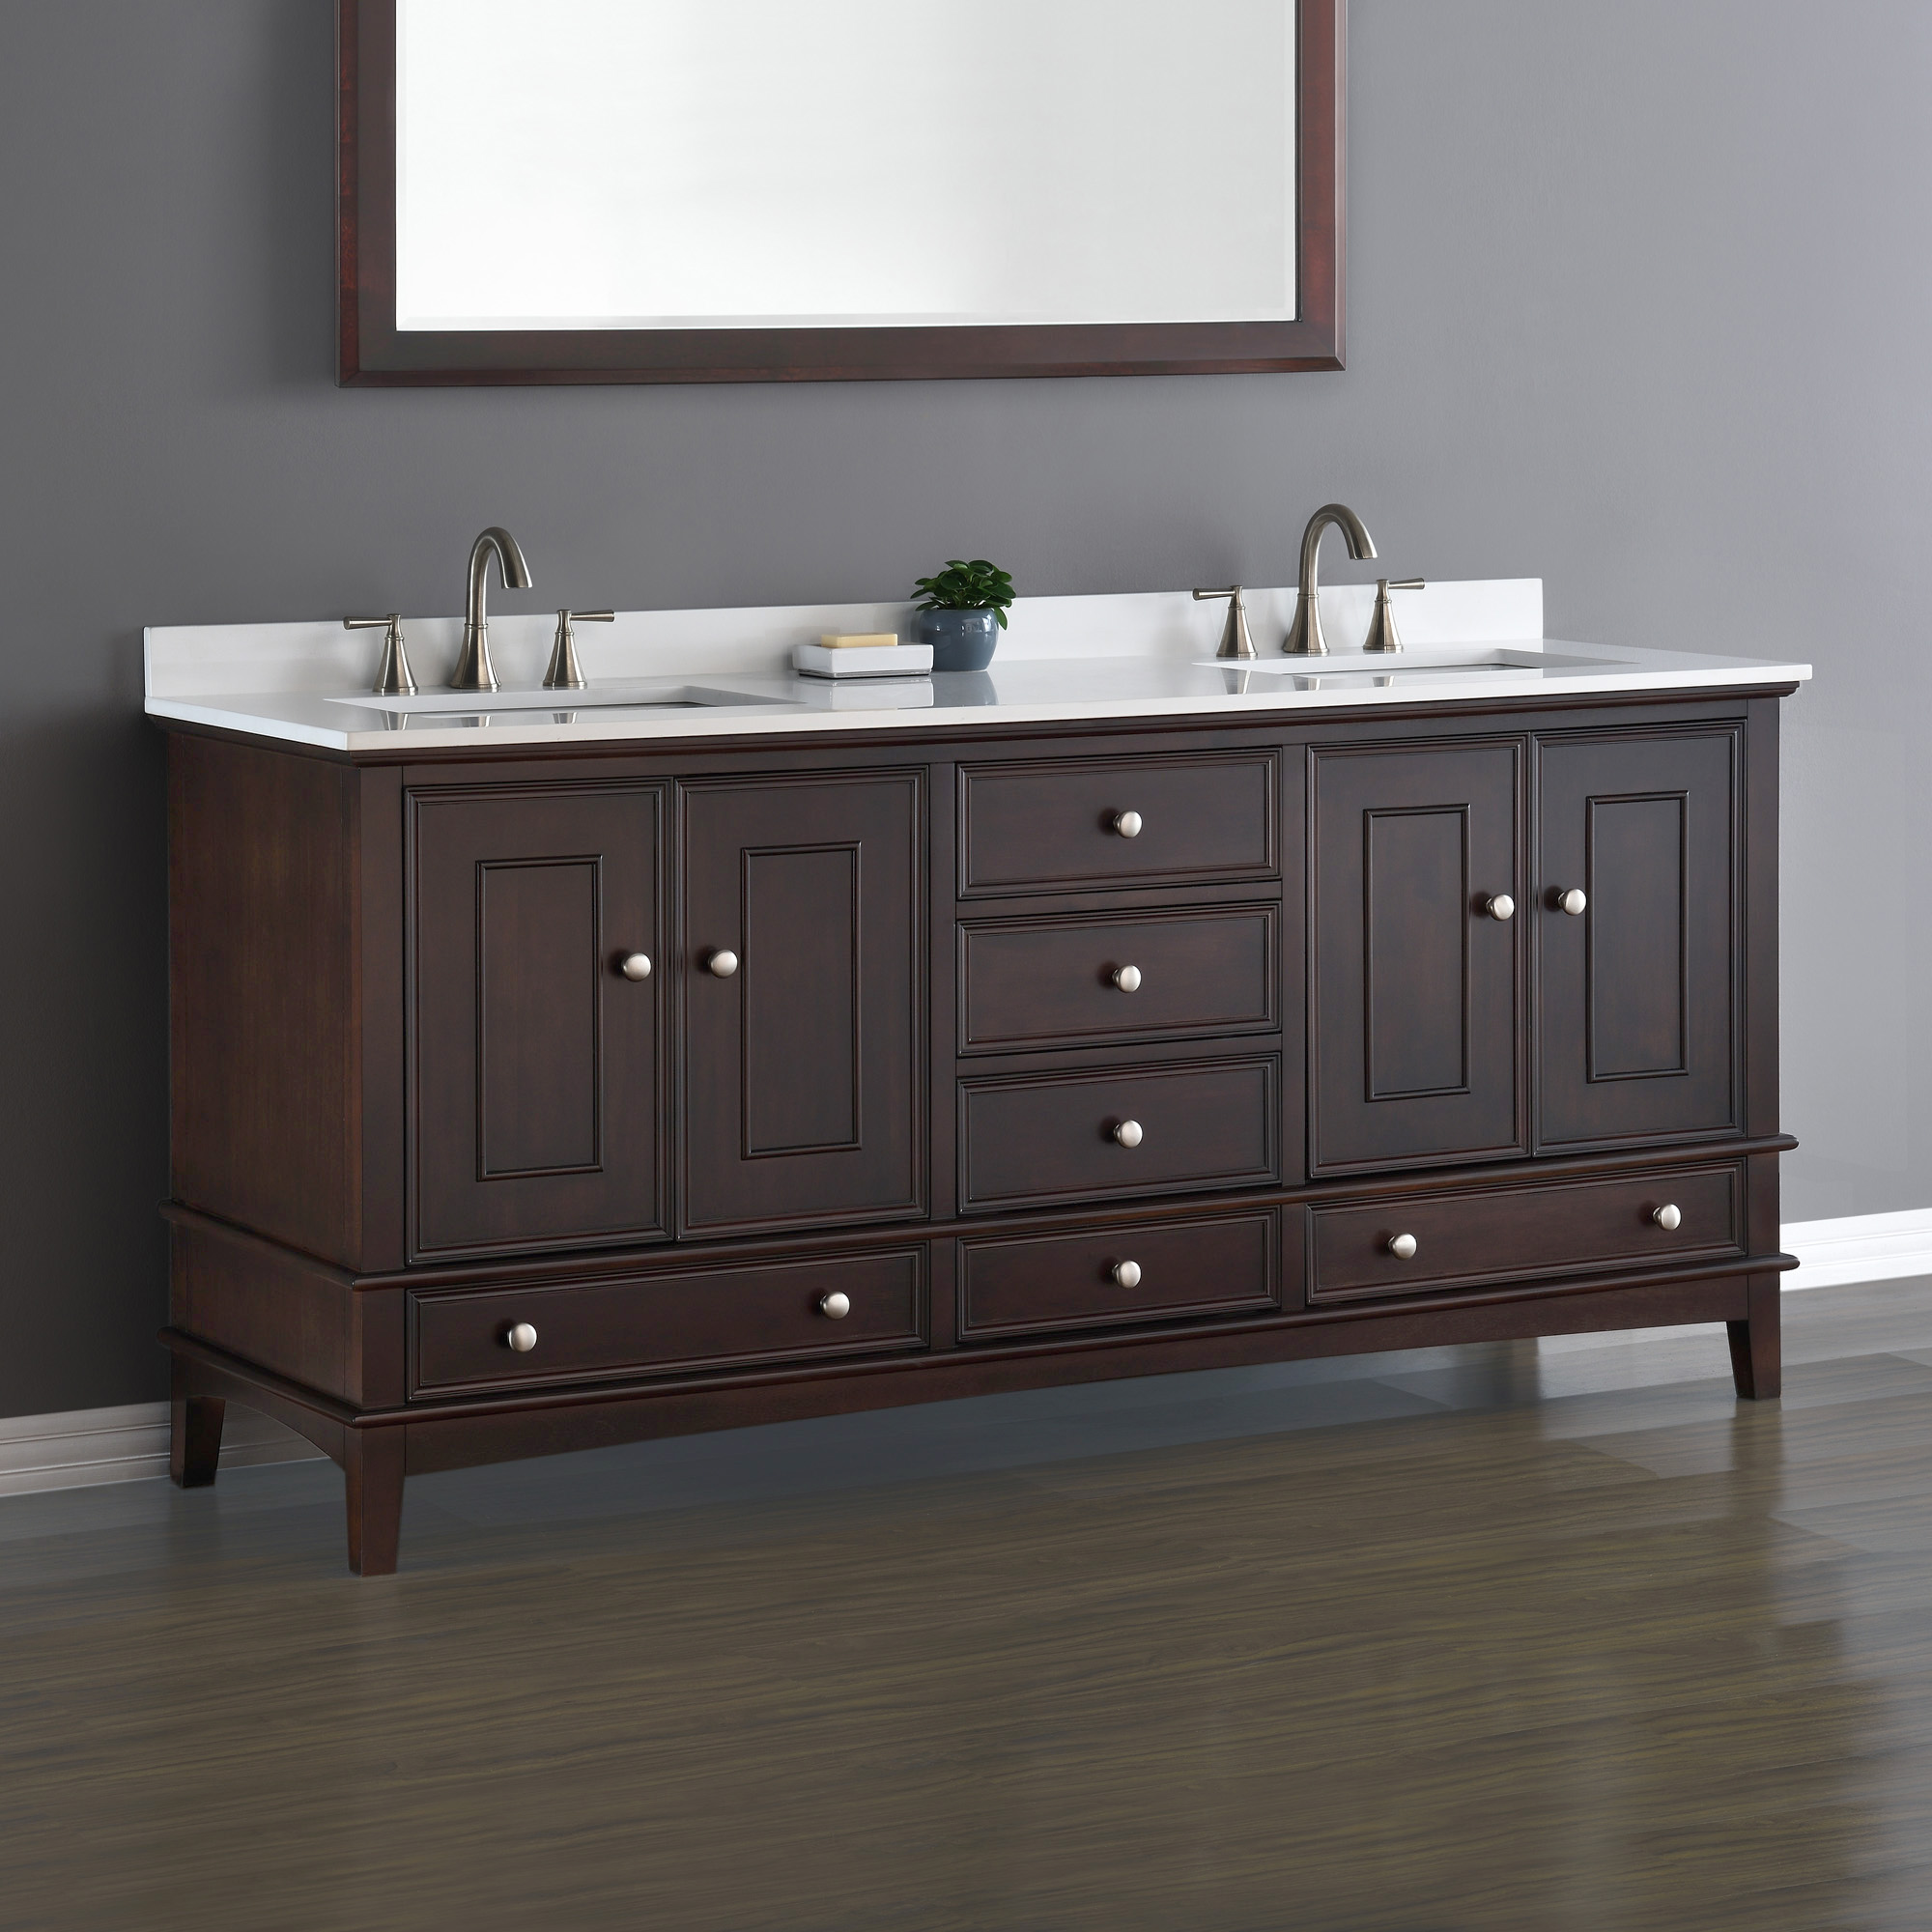 sink inch ikea custom sinks countertop vanity double combination overstock tops bathroom